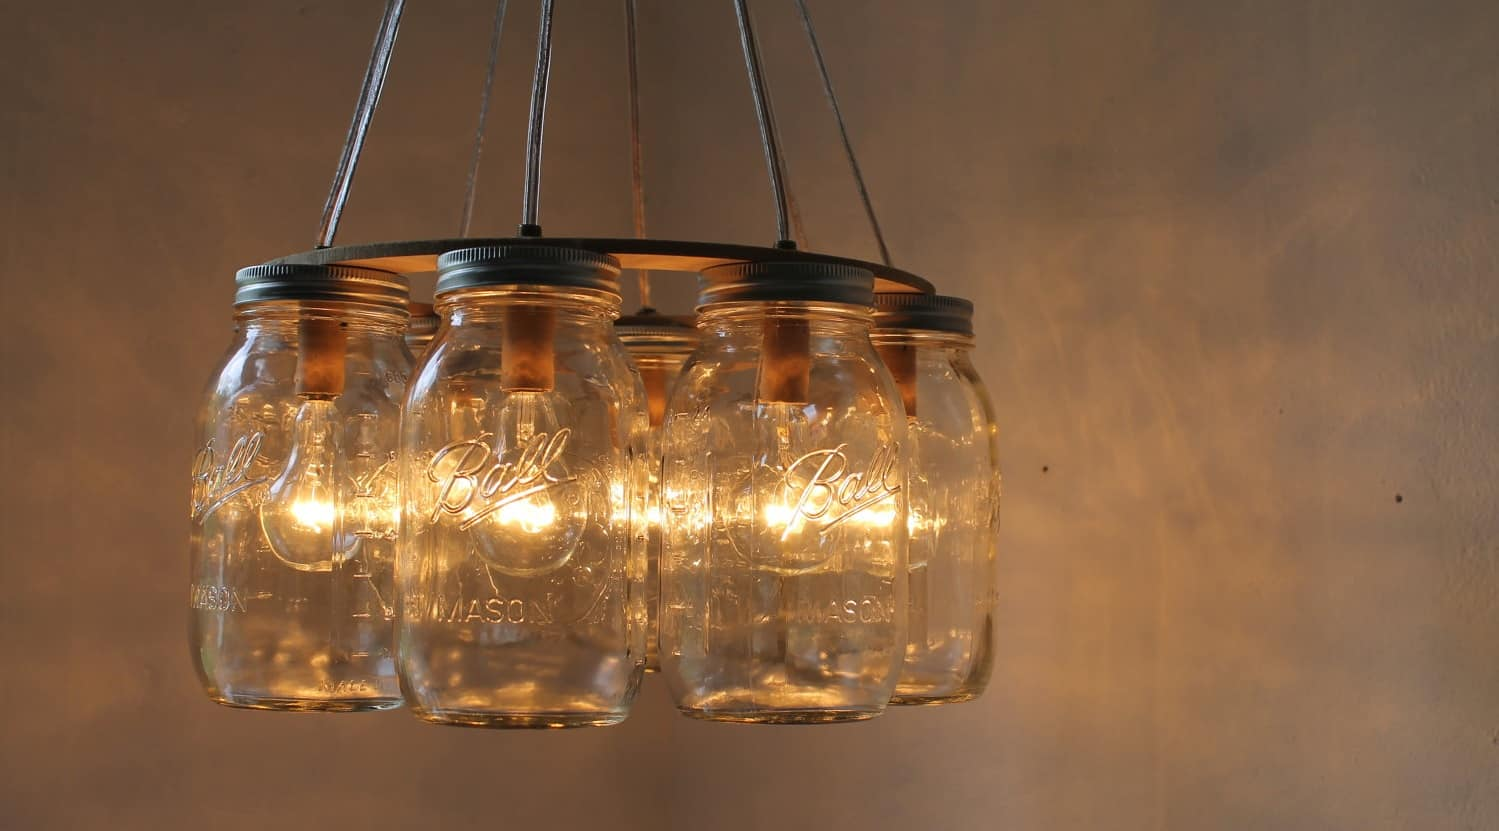 Home chandelier lighting contractorbhai home chandelier light india aloadofball Images